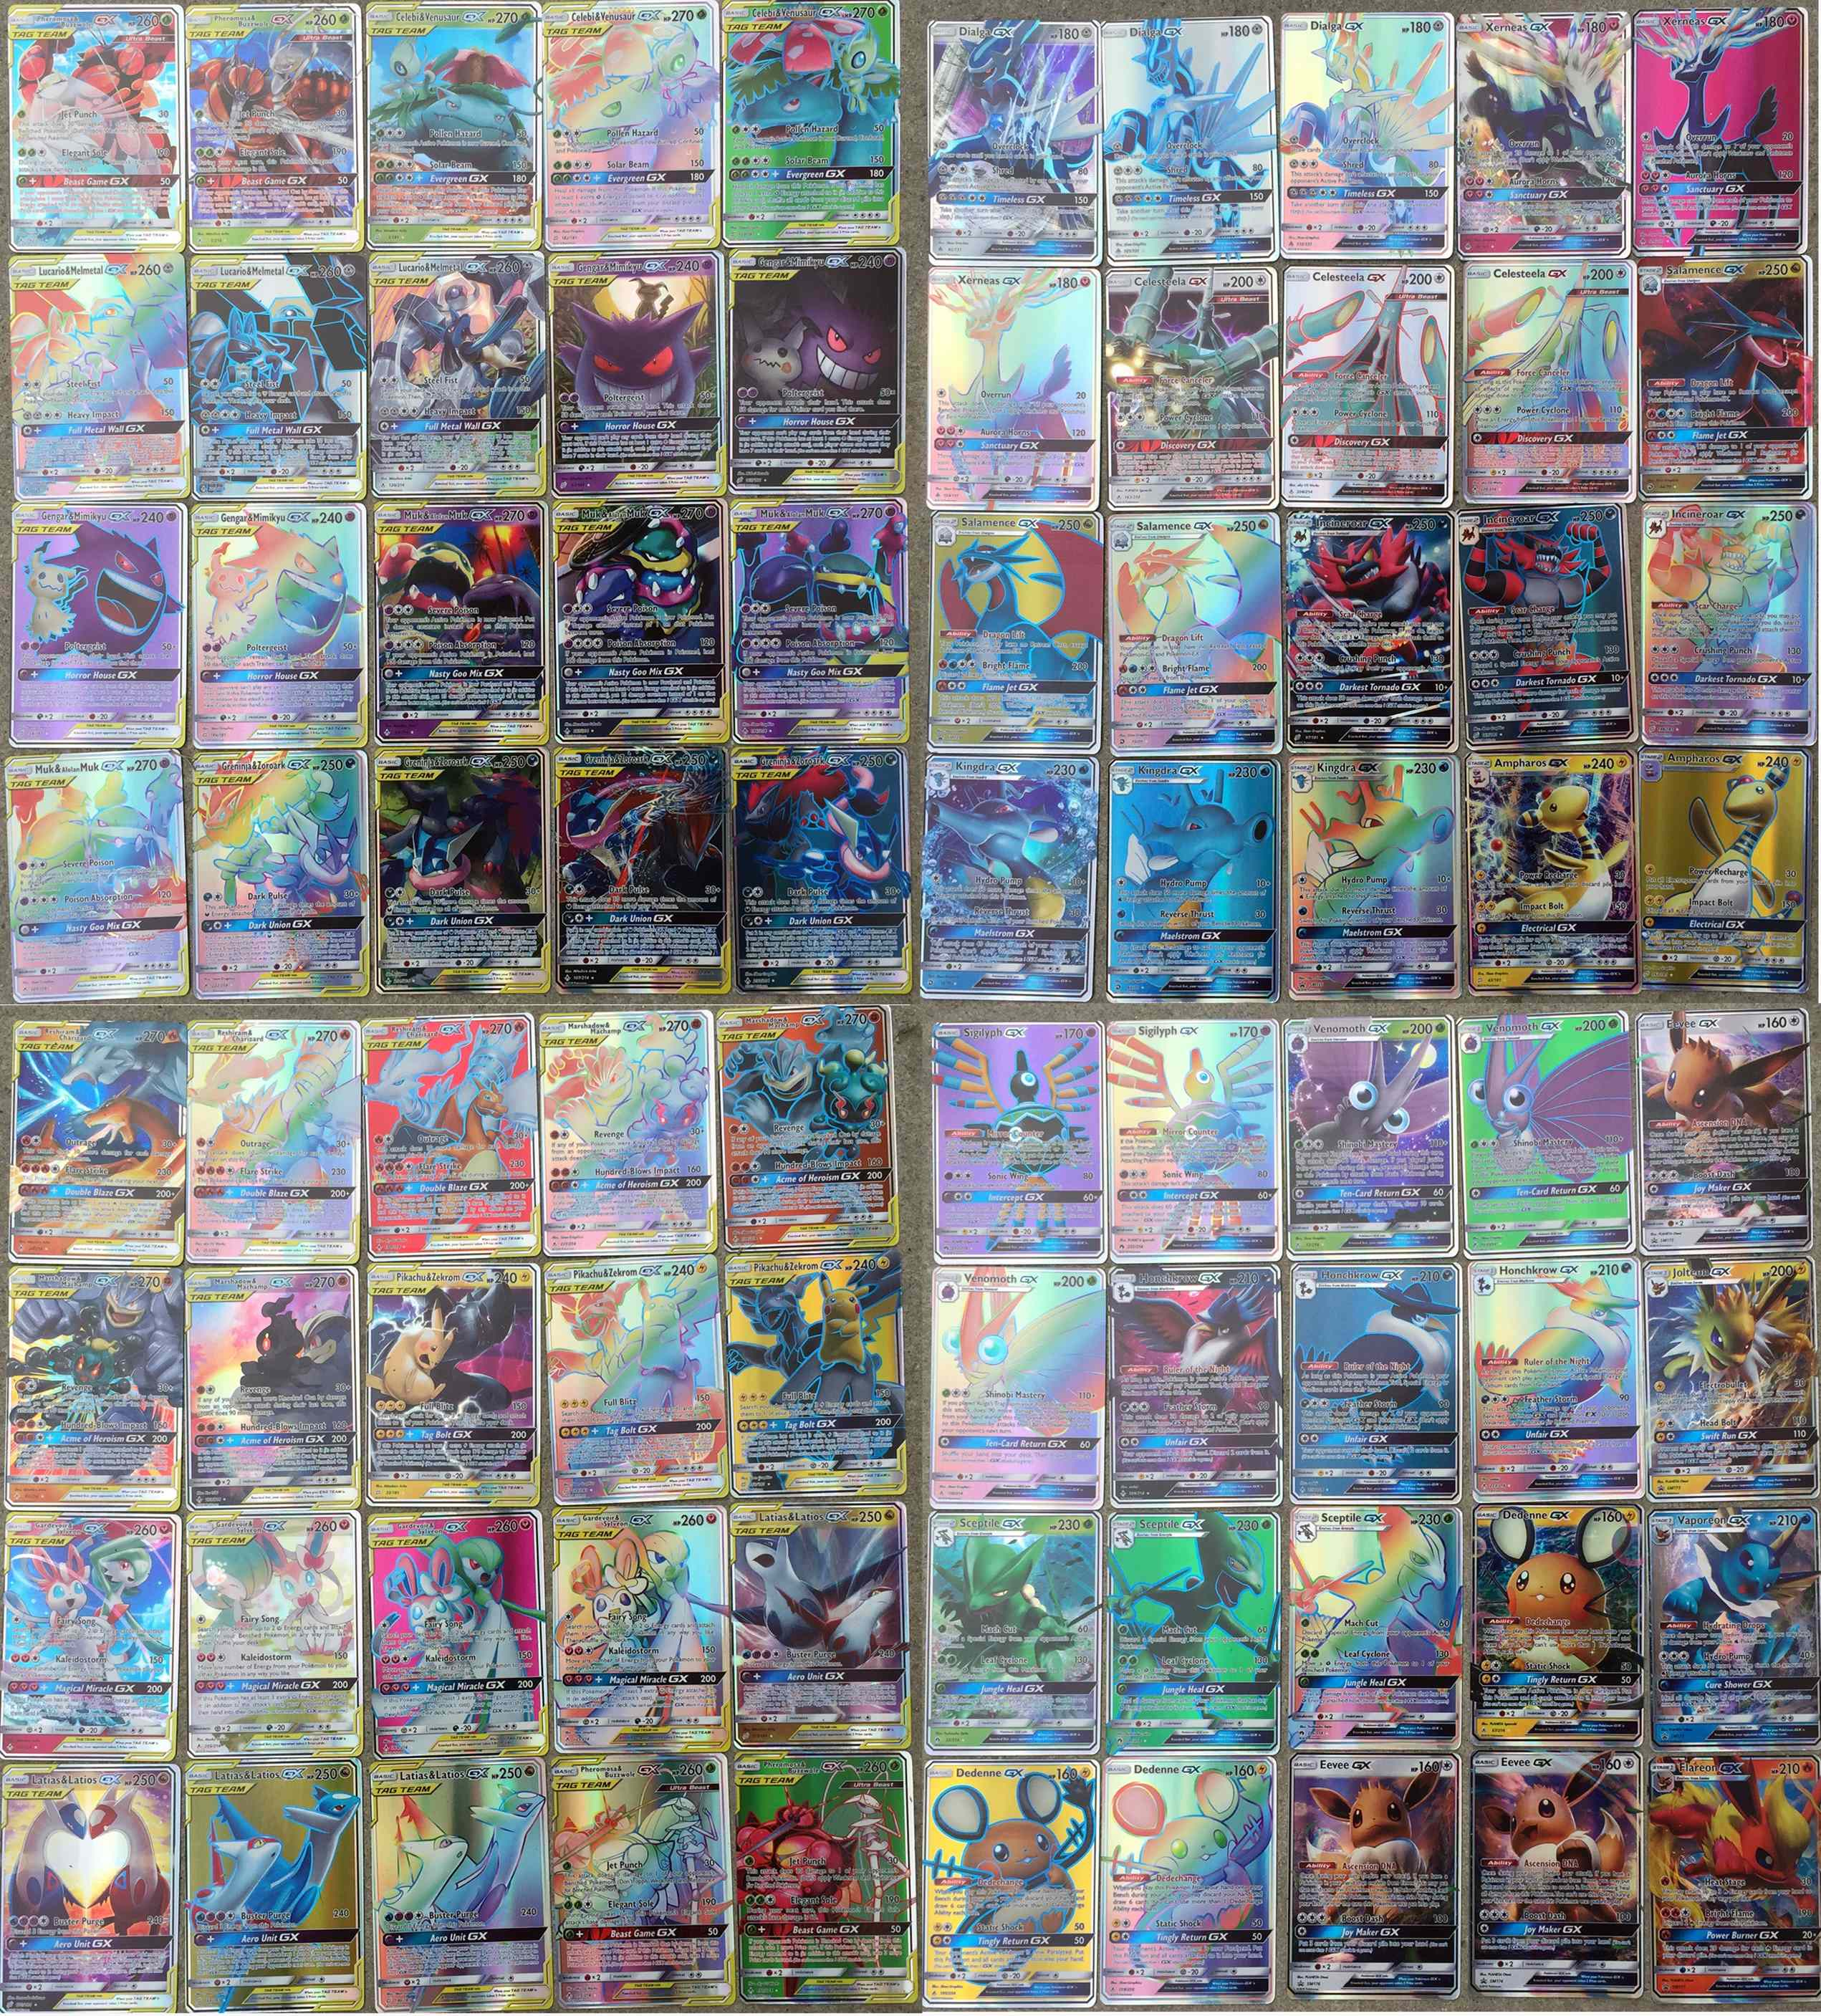 NEW CARDS 120C/D Pcs 40TEAM + 80GX  Ultra Beast TCG Shining Cards Game Battle Trading Cards For Children Toys Xmas